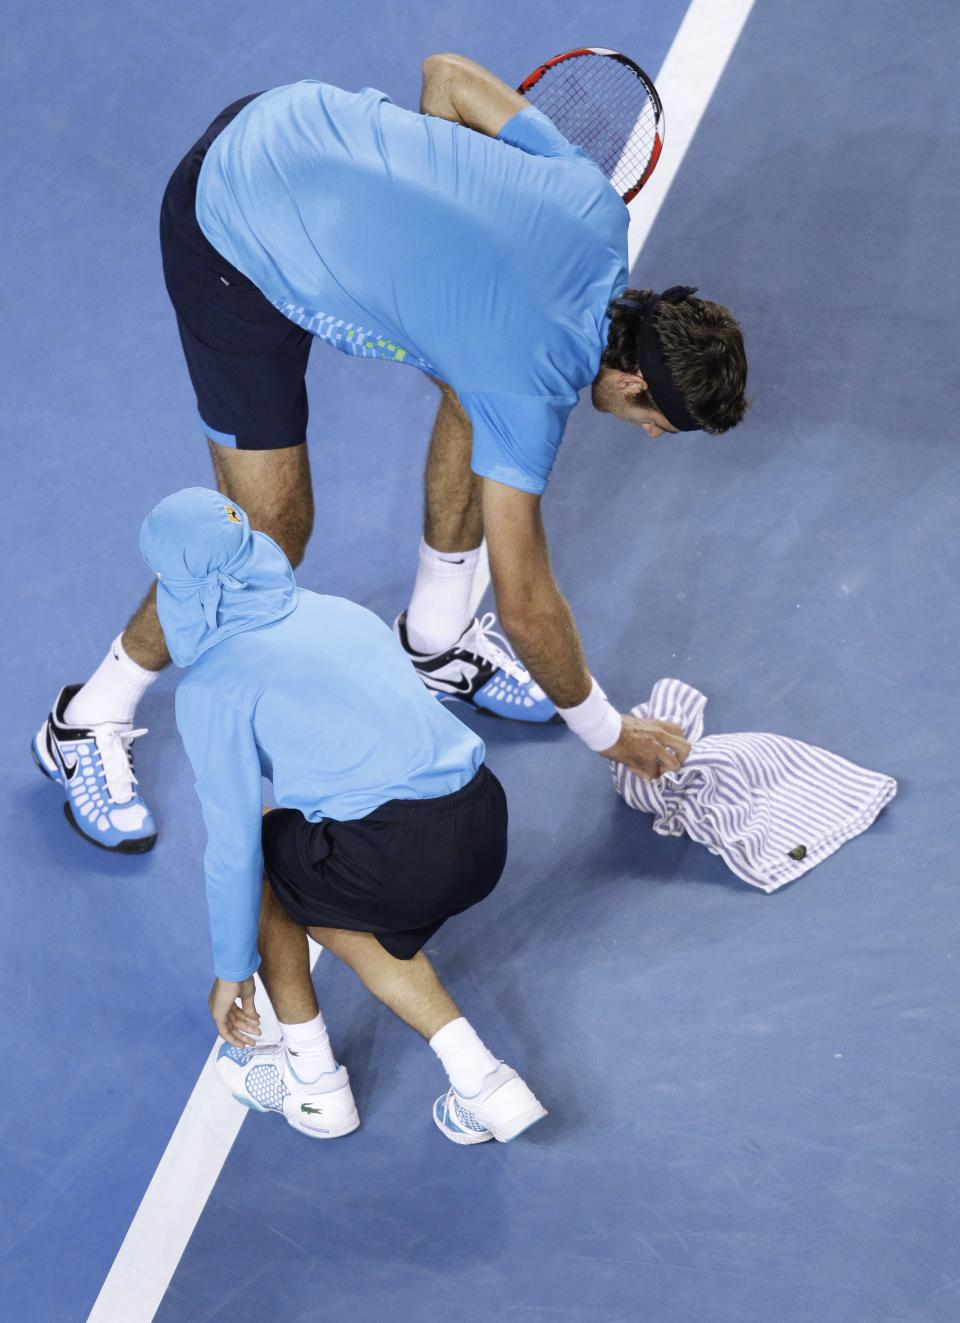 Argentina's Juan Martin Del Potro collects bugs off the court wiuth the help of a ball boy during his third round match against Taiwan's Lu Yen-Hsen at the Australian Open tennis championship, in Melbourne, Australia, Friday, Jan. 20, 2012. (AP Photo/Sarah Ivey)